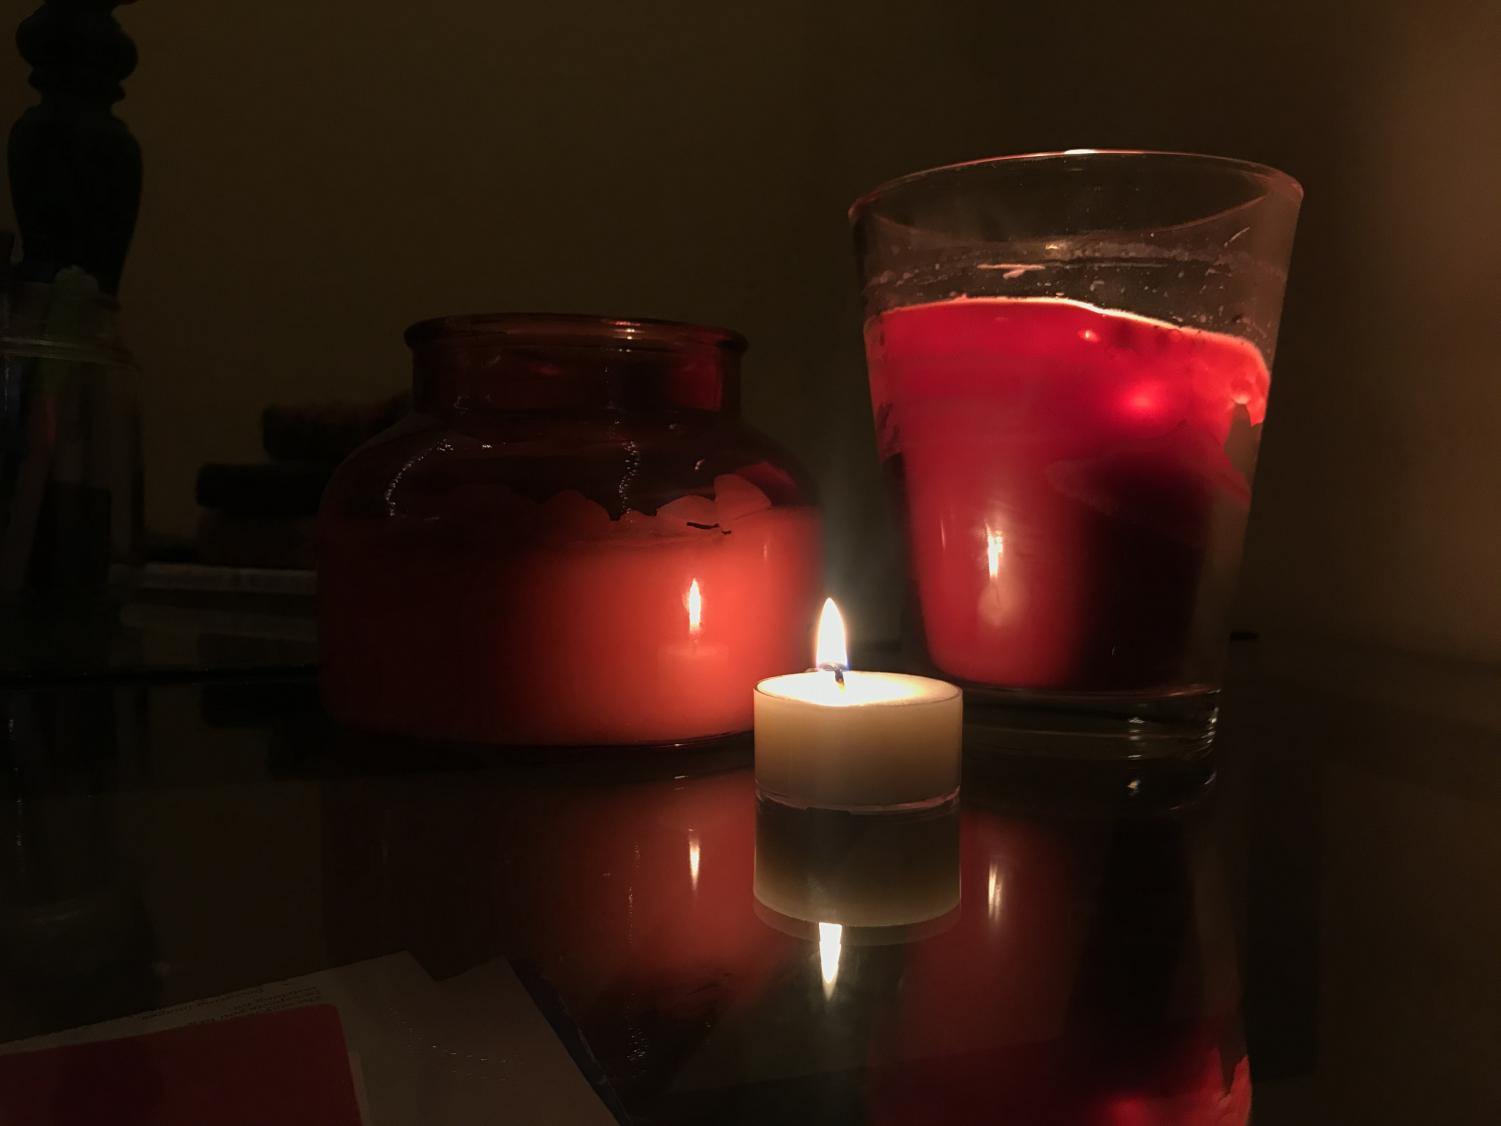 A small, homemade candle burning in front of two larger candles.